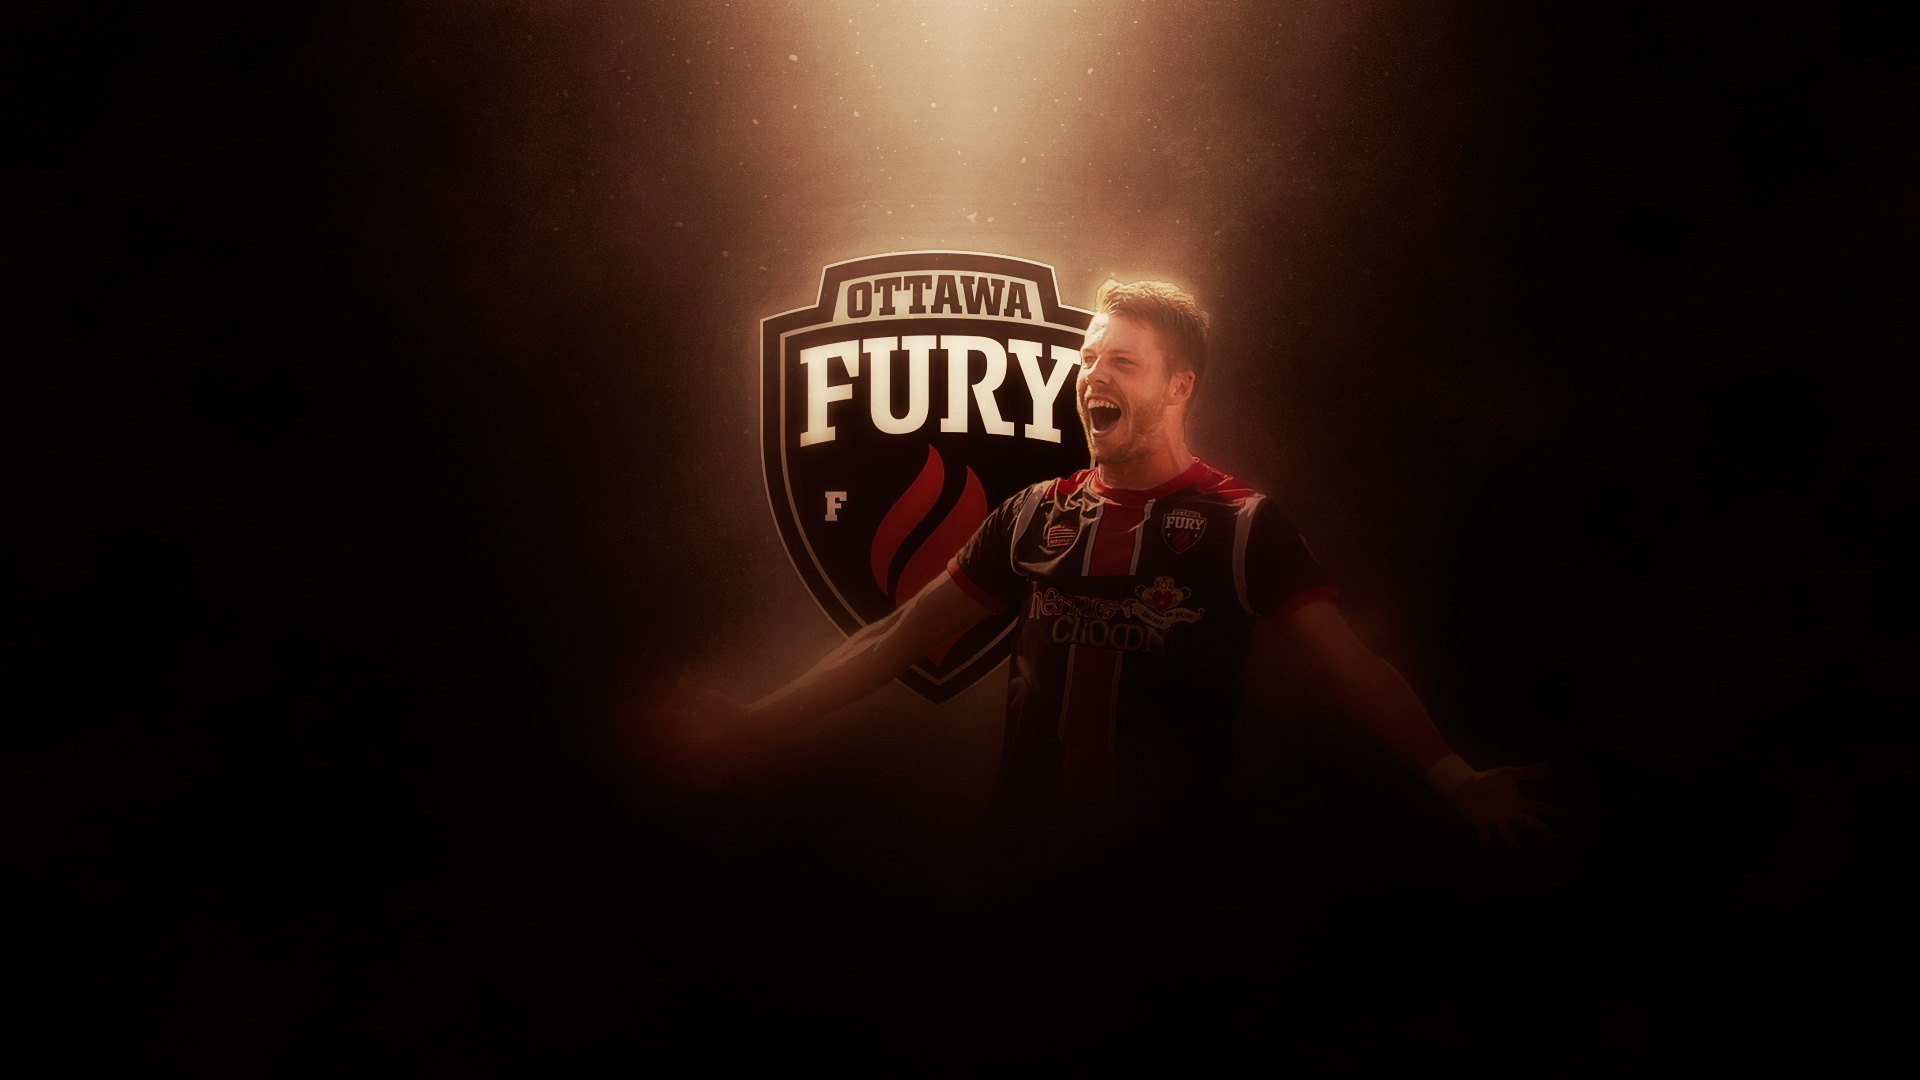 Wallpaper Wednesday Download This Weeks Ottawa Fury Wallpaper 1920x1080